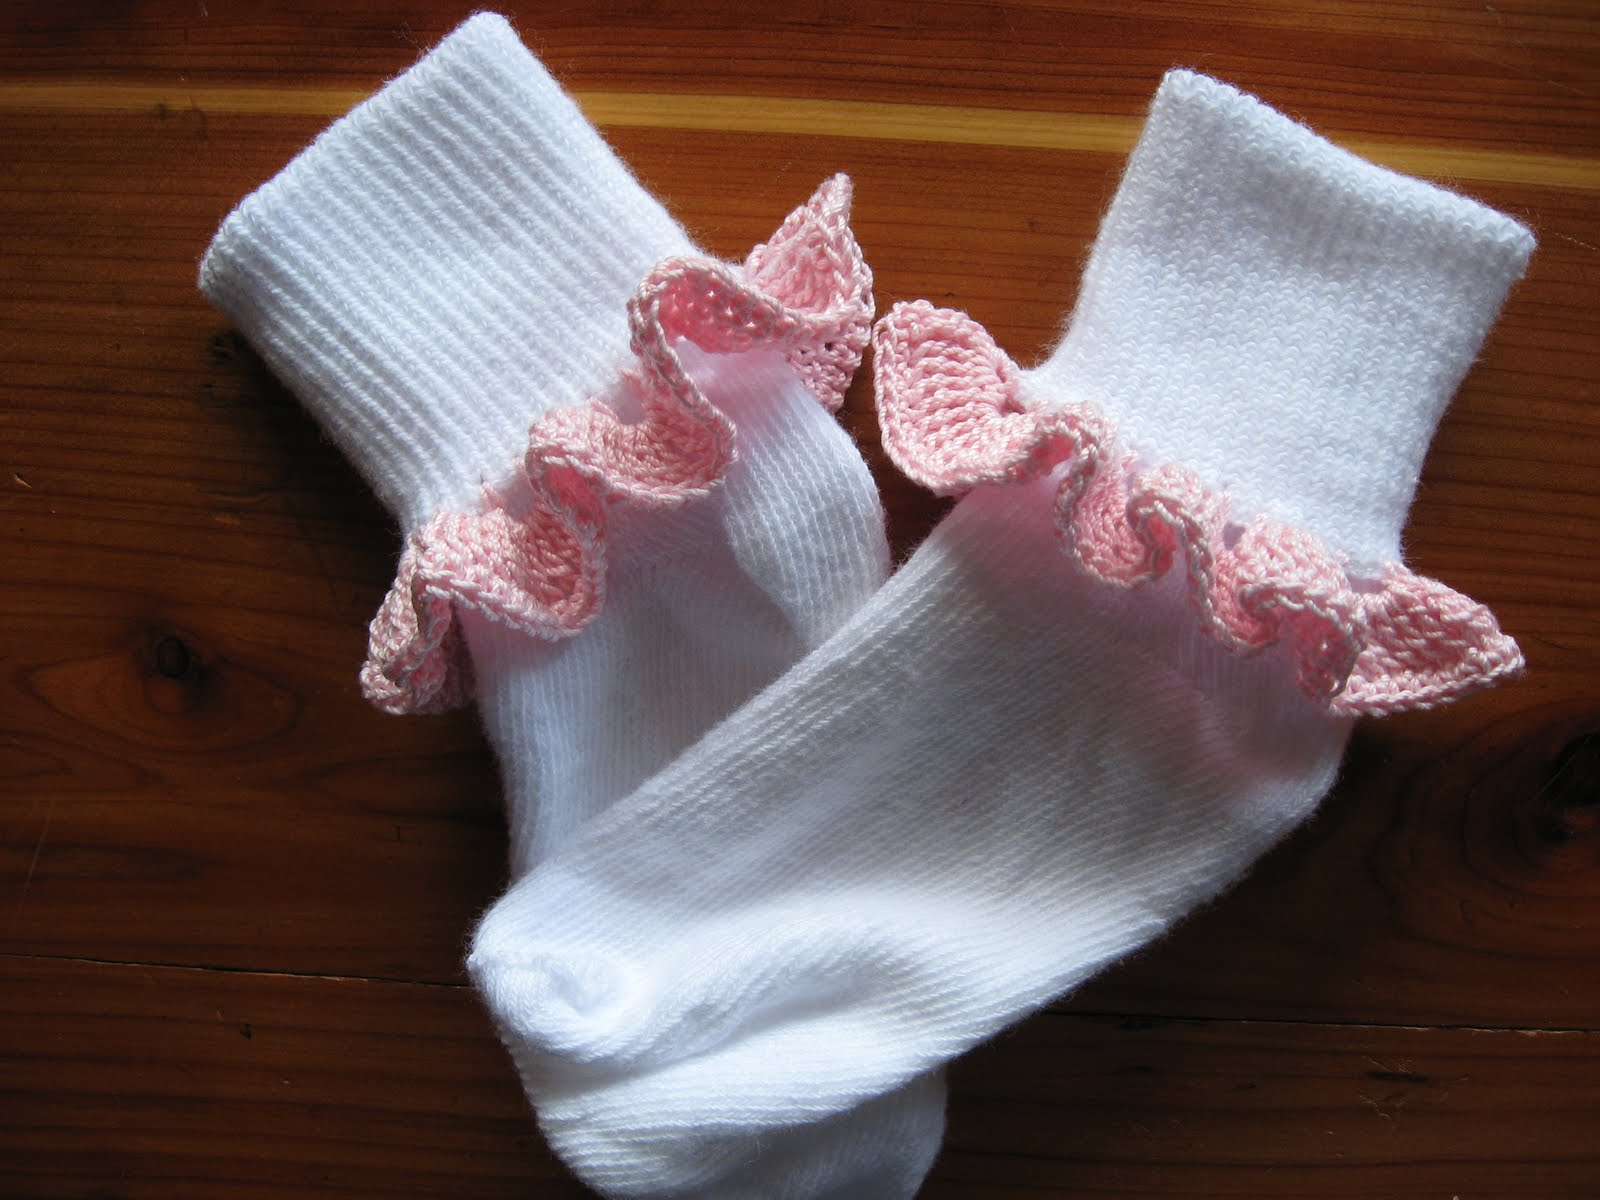 Crochet Socks : Tammys Times: ~Crochet Pattern: Girls Ruffle Socks~